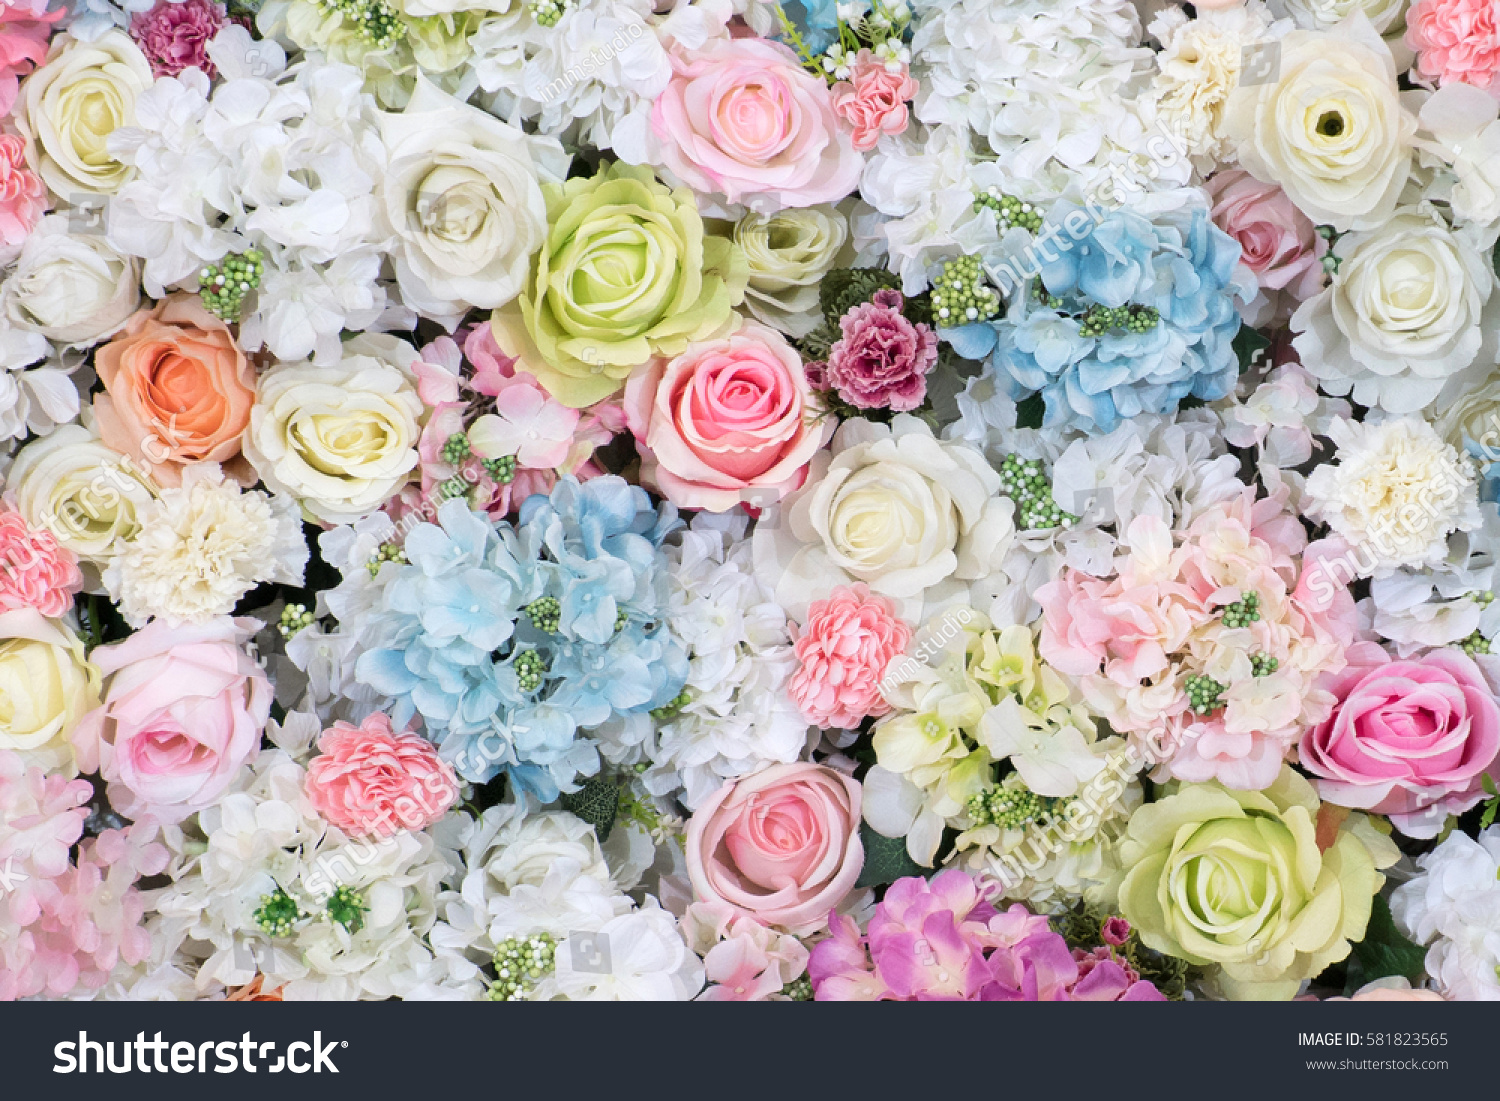 Abstract background flowers closeup flower bouquets stock photo abstract background of flowers close up flower bouquets bunch of flowers izmirmasajfo